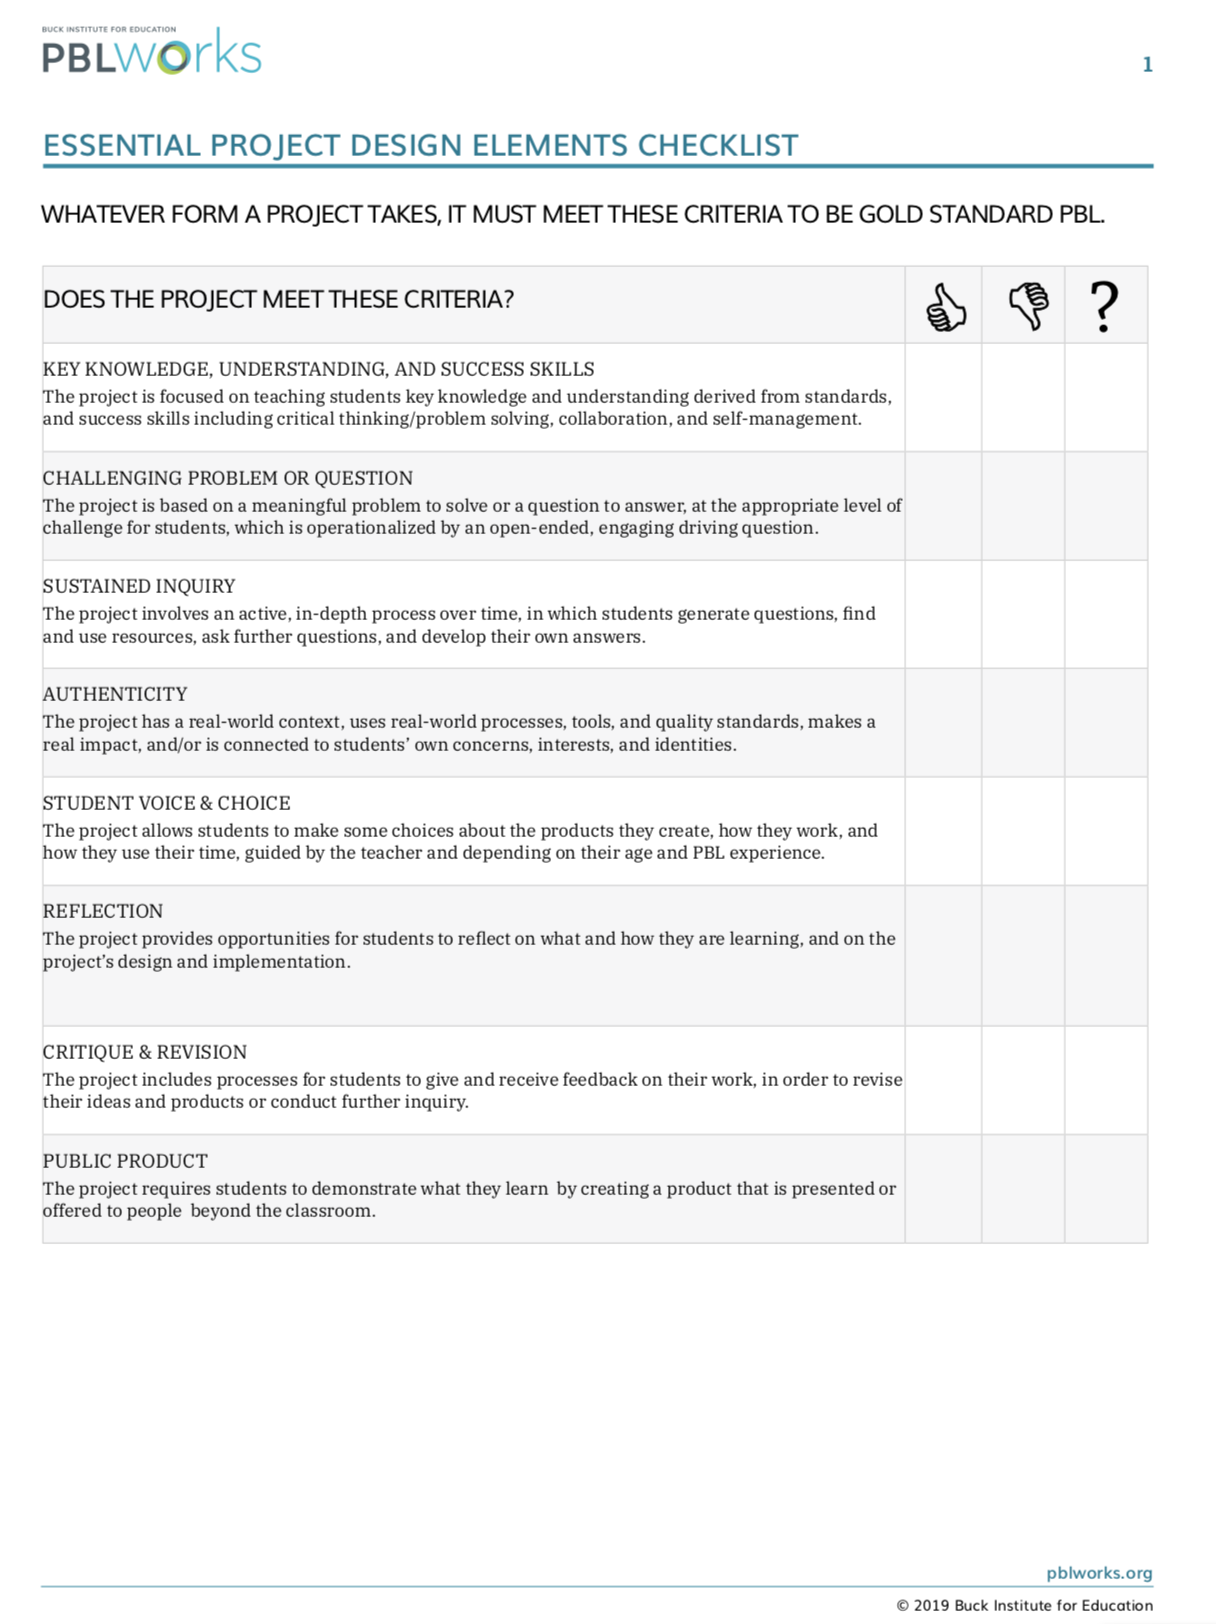 Essential Project Design Elements Checklist